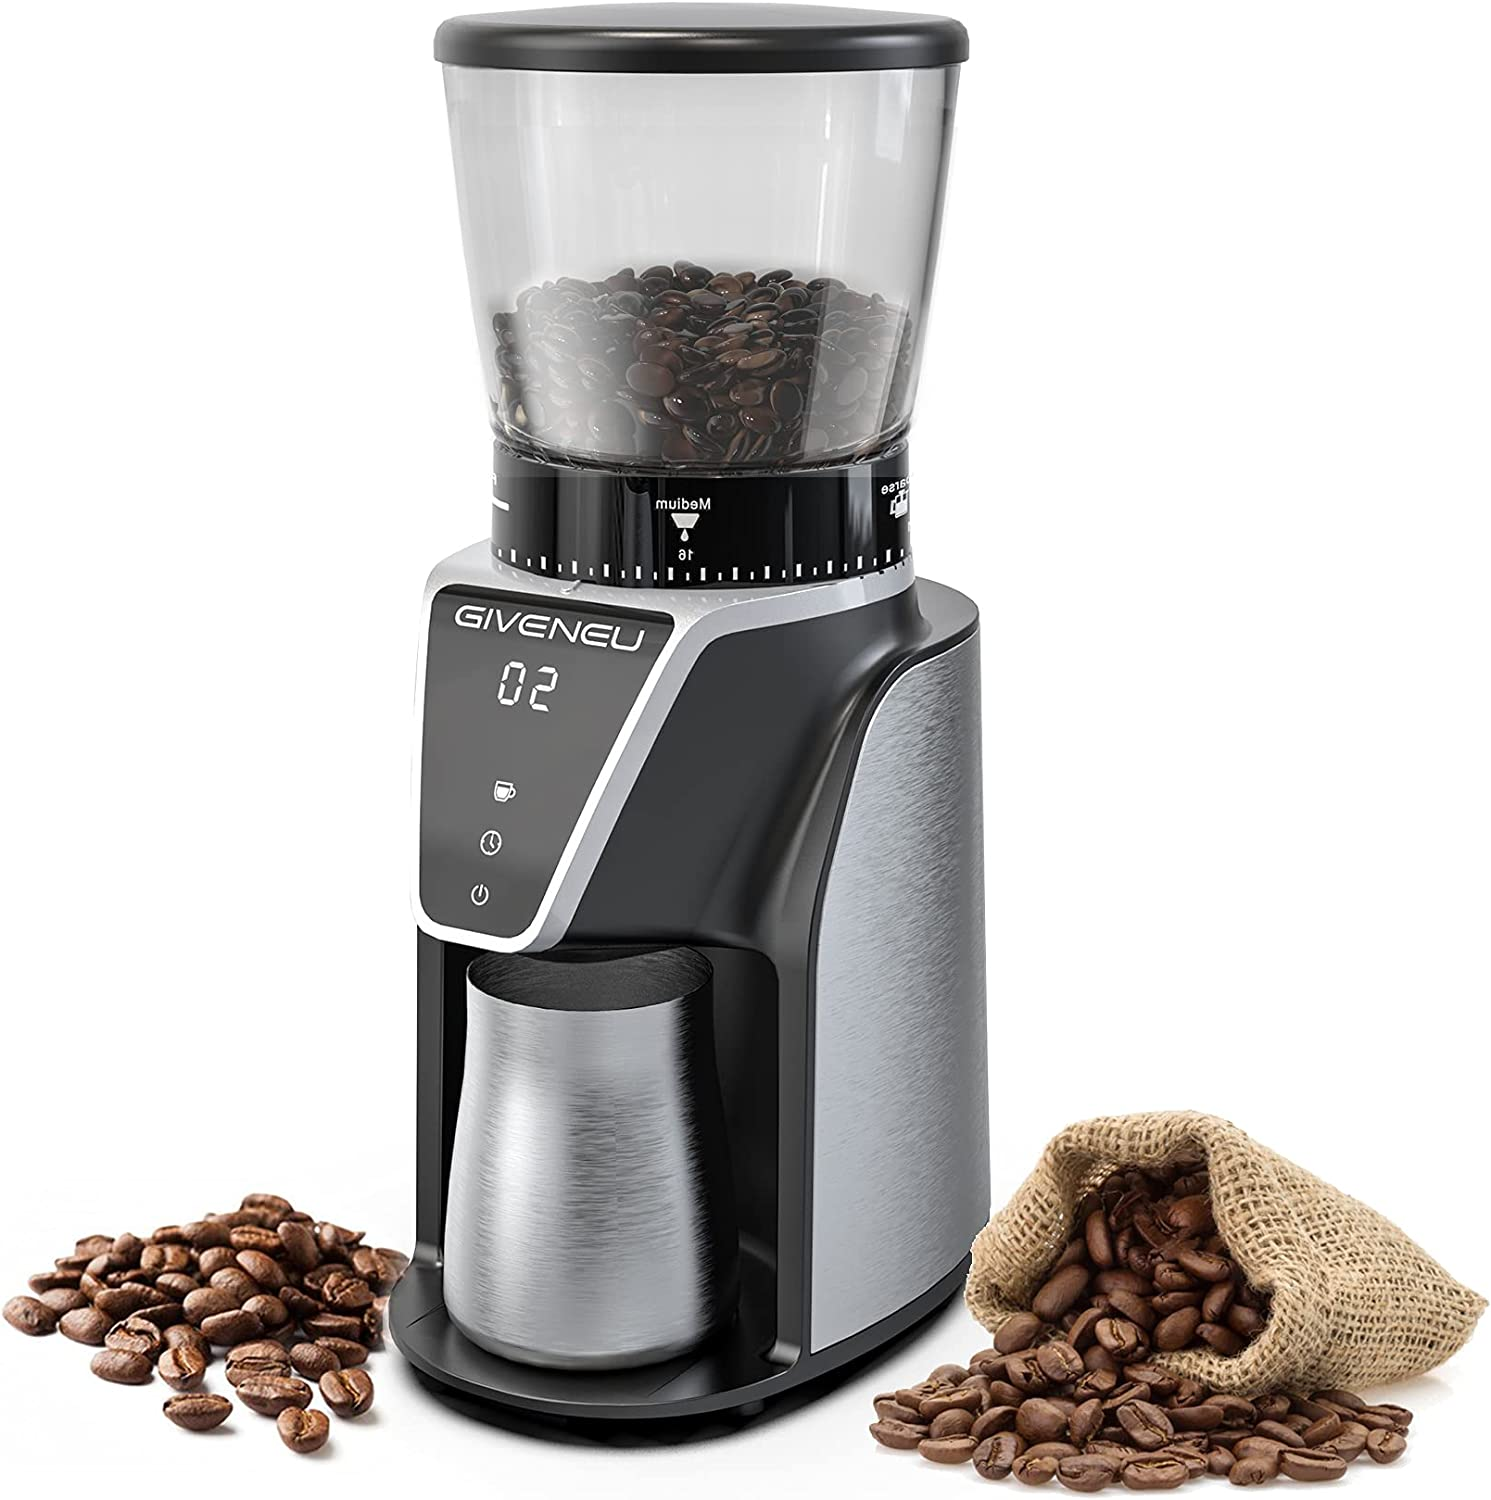 Don't miss the campaign Electric Burr Coffee Grinder Bean Challenge the lowest price G GIVENEU Conical